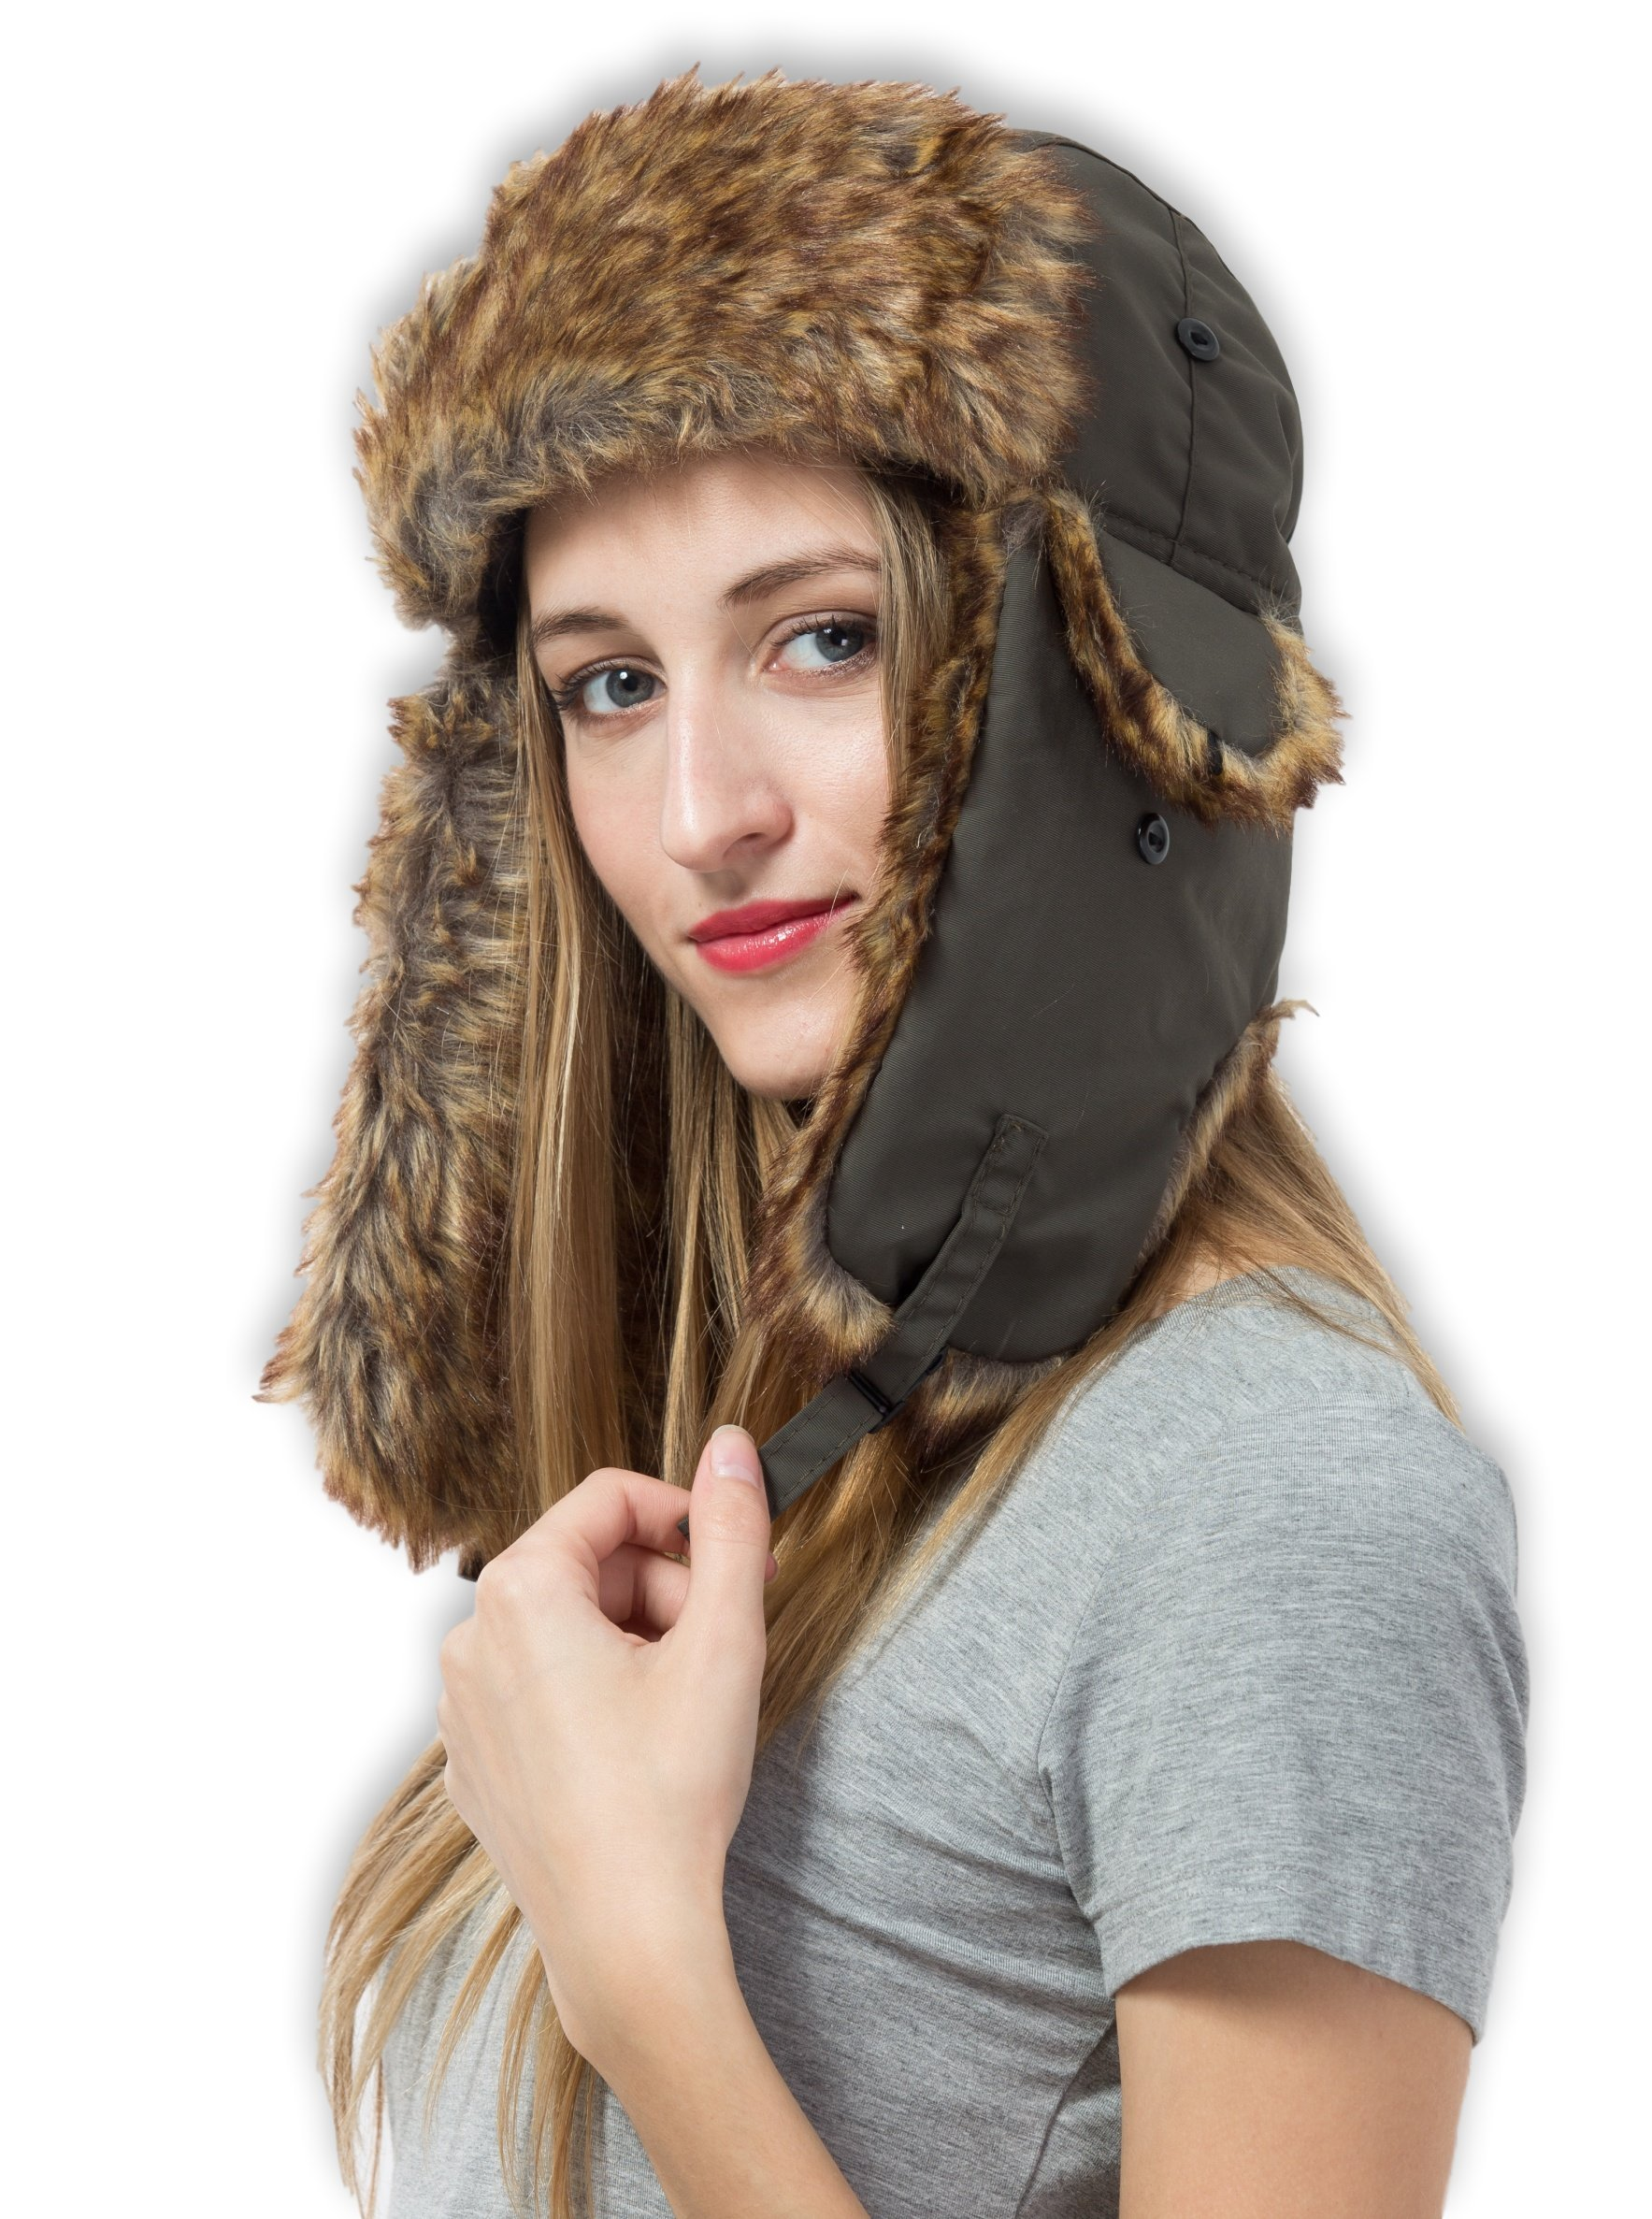 b4f8c7d0 Trapper Hat with Faux Fur & Ear Flaps - Ushanka Aviator Russian Hat for  Serious Expeditions